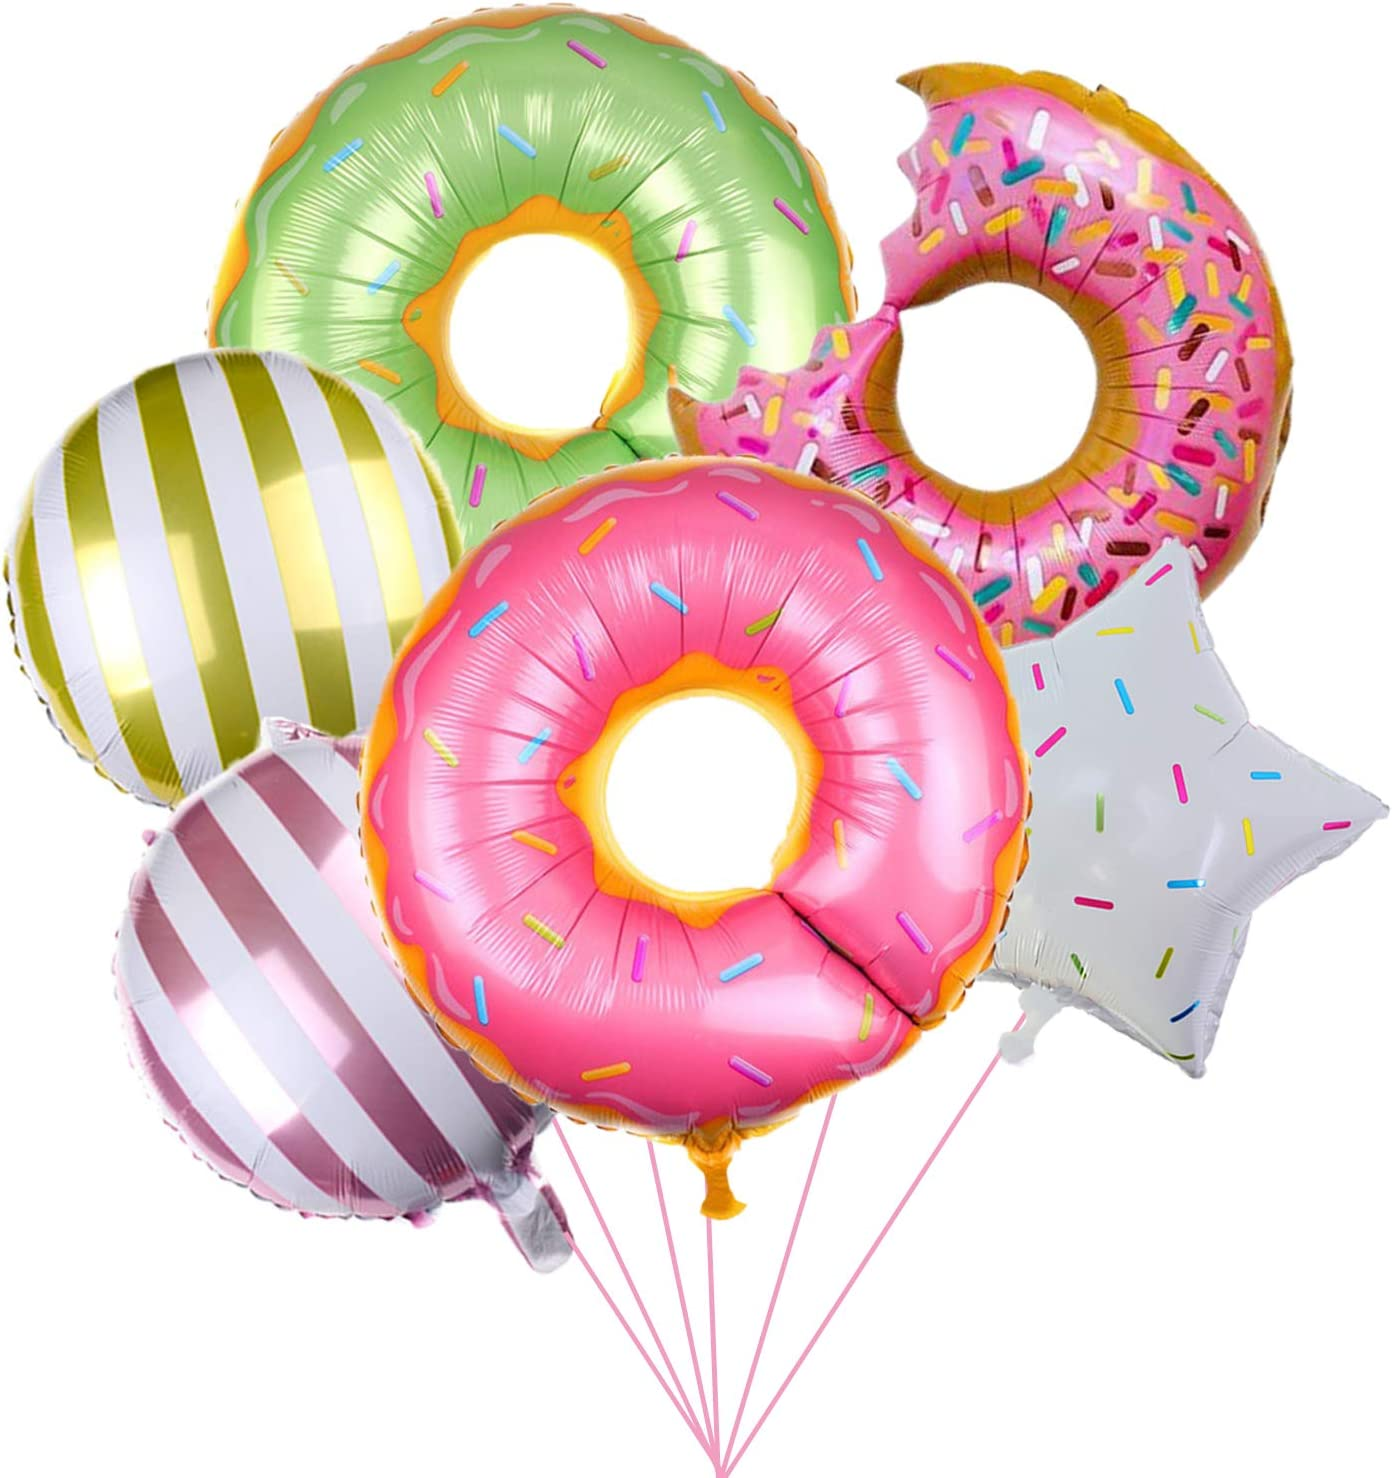 6 PCS Donut Foil Balloons - Sweet Donut Birthday Party/ Baby Shower/First Birthday Party/Class Party Supplies Decorations Favors Home Outdoor Kawaii Decor